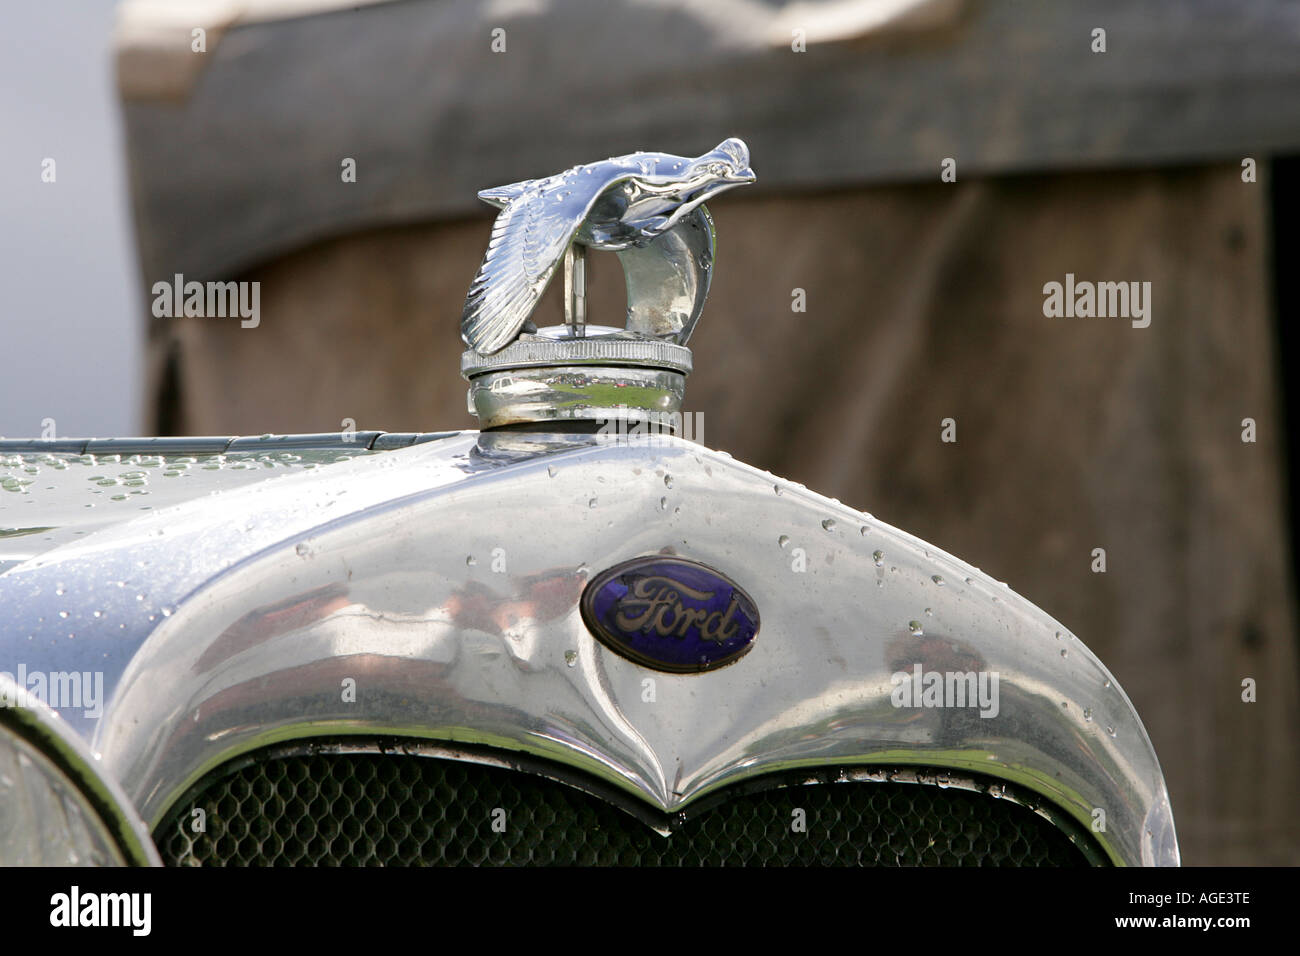 classic car Ford logo close up old history vehicle vintage ...